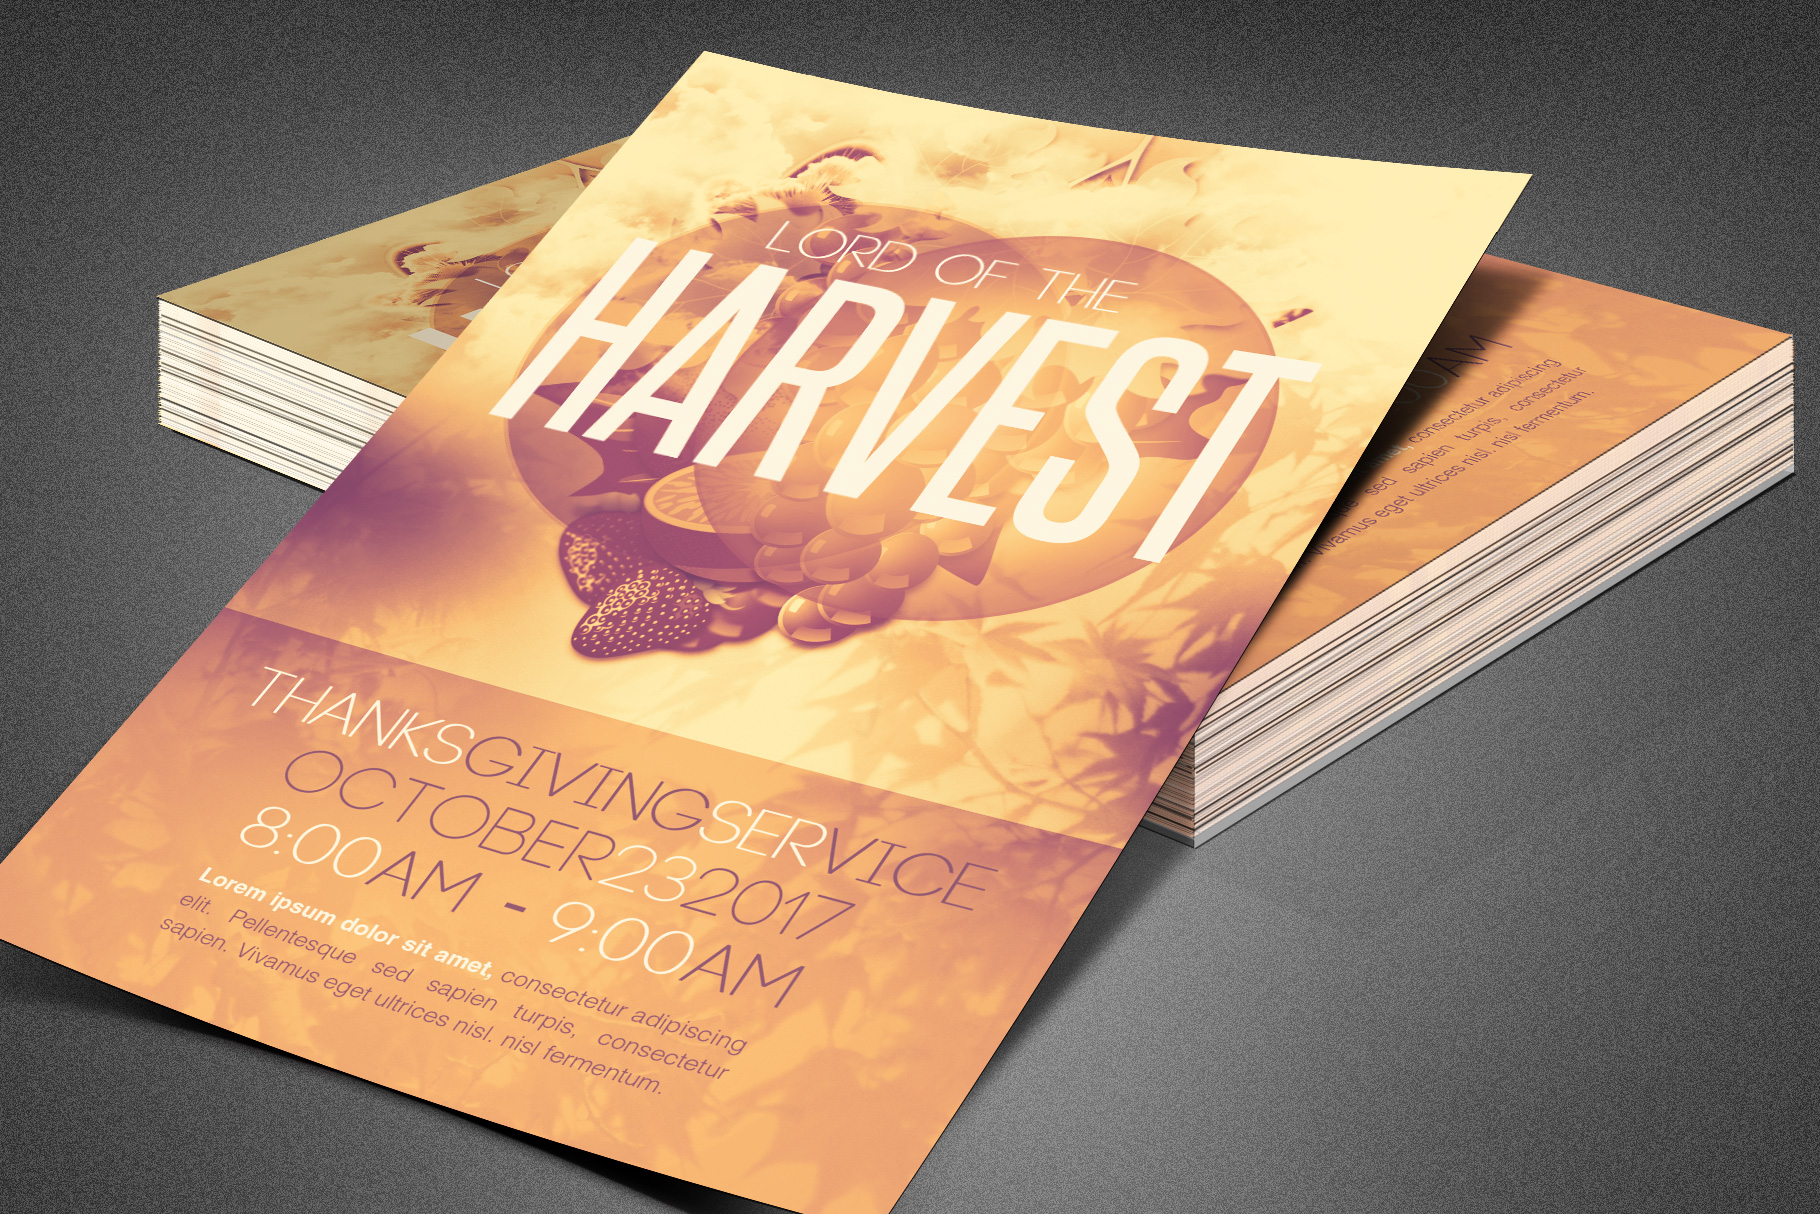 Lord of the Harvest Church Flyer example image 5